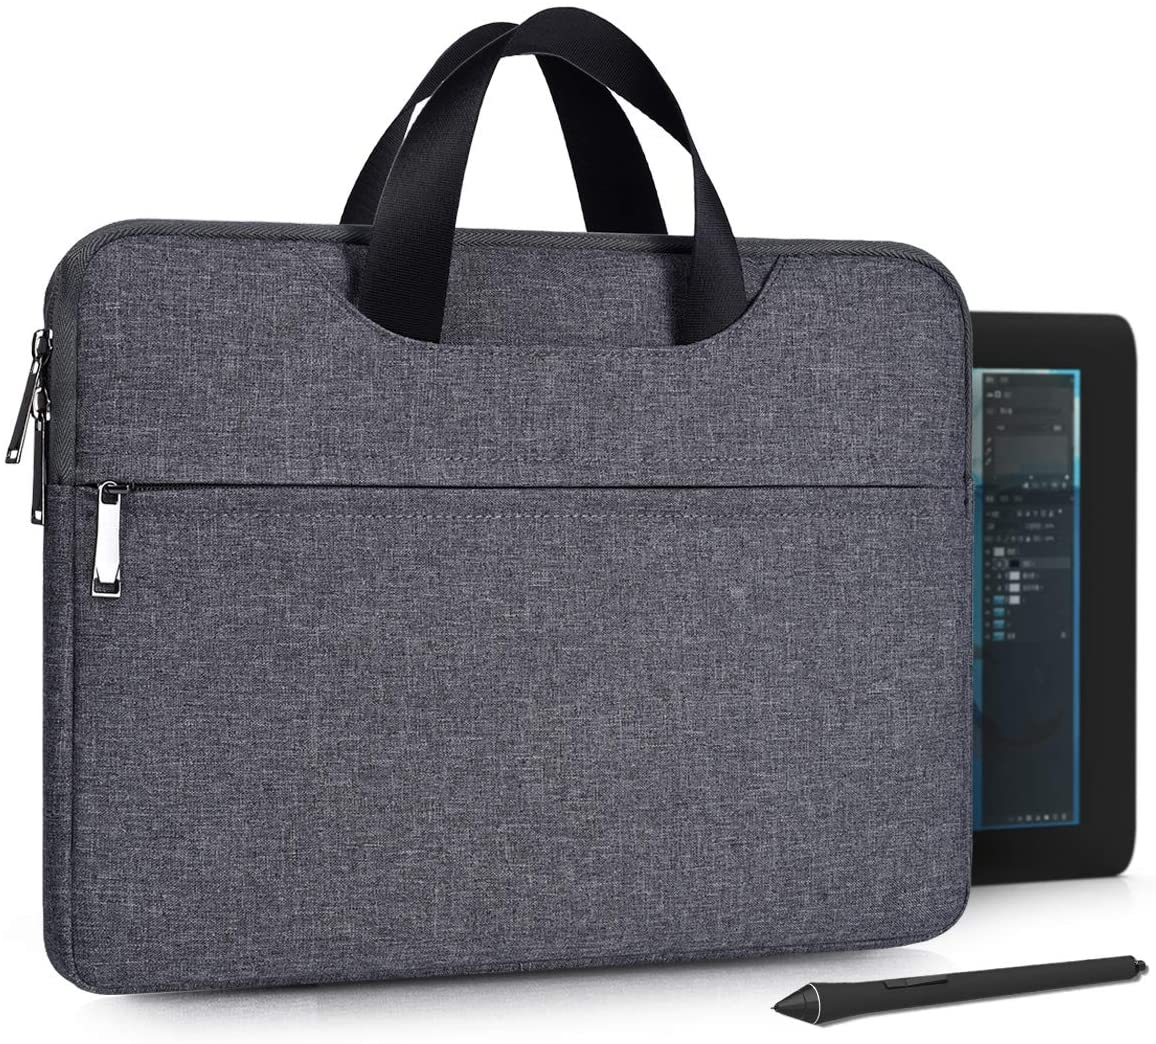 Graphics Drawing Tablet Sleeve Case for Huion KAMVAS Pro 13 GT-133/ Inspiroy H1161/ Inspiroy Q11K, XP-Pen Artist12, UGEE M708, Wacom Cintiq 13HD Bag with Handle (Space Grey)